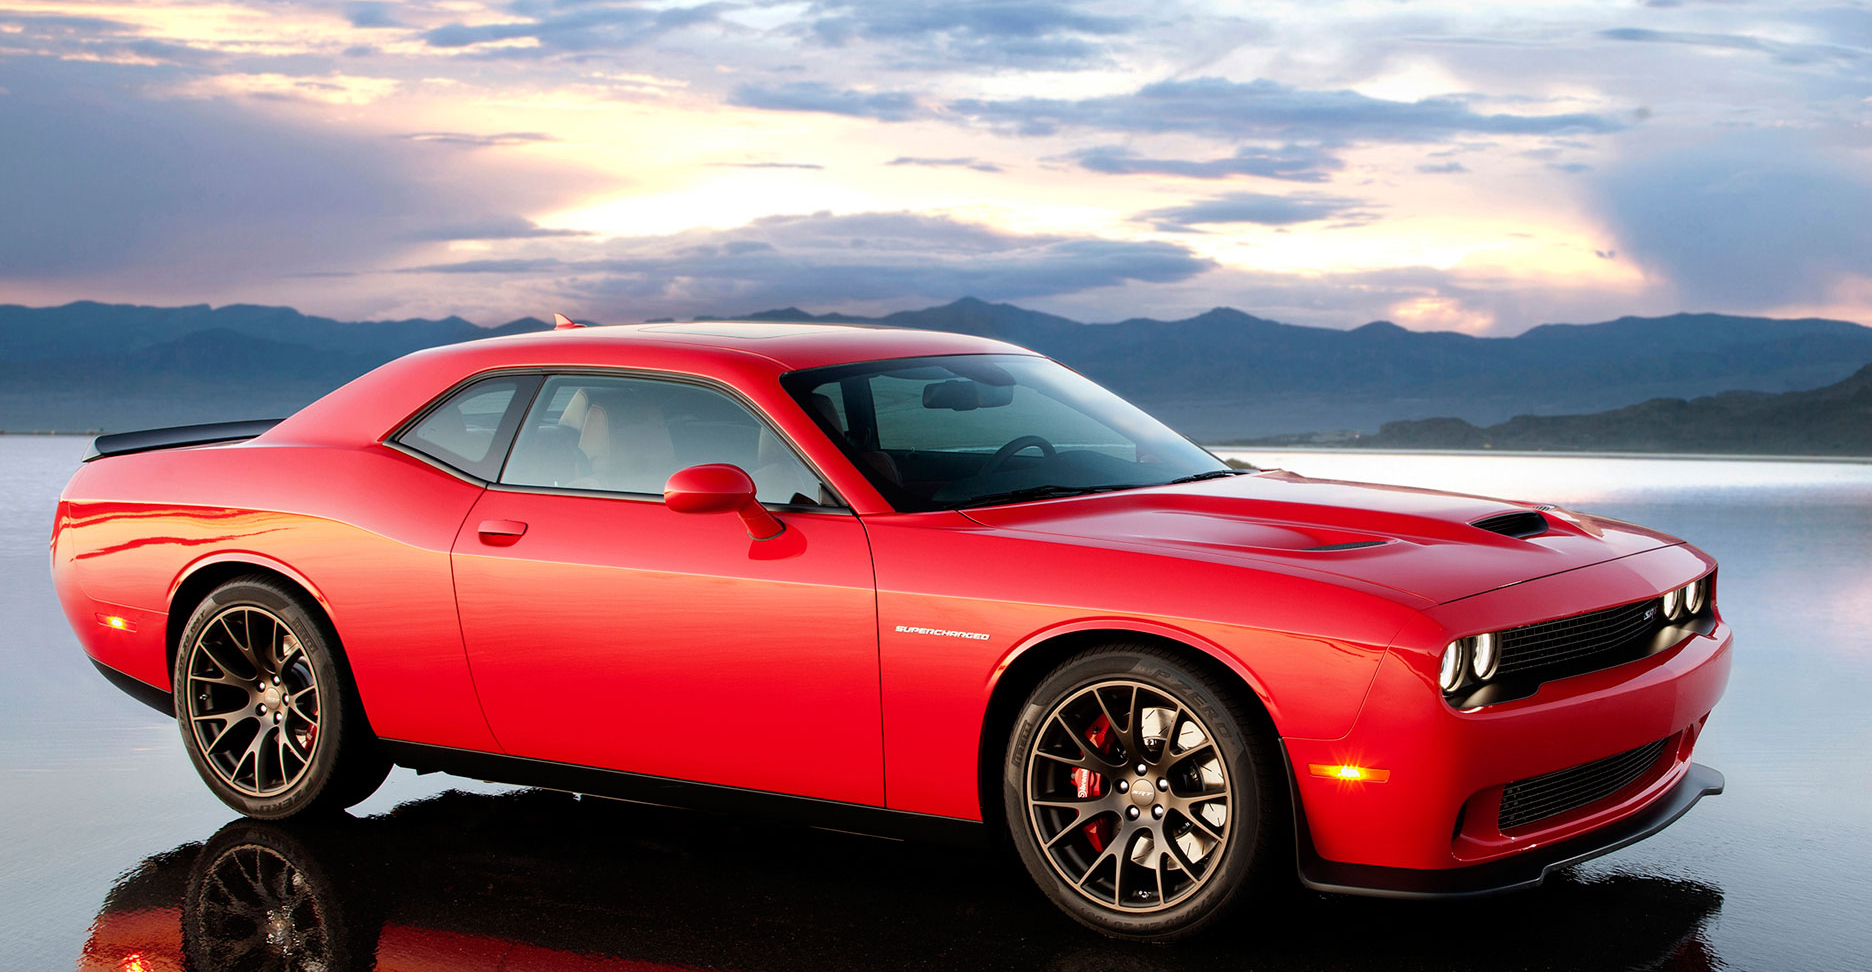 Srt Performance Dodge Challenger Srt Hellcat Aventura Chrysler Jeep Dodge Ram